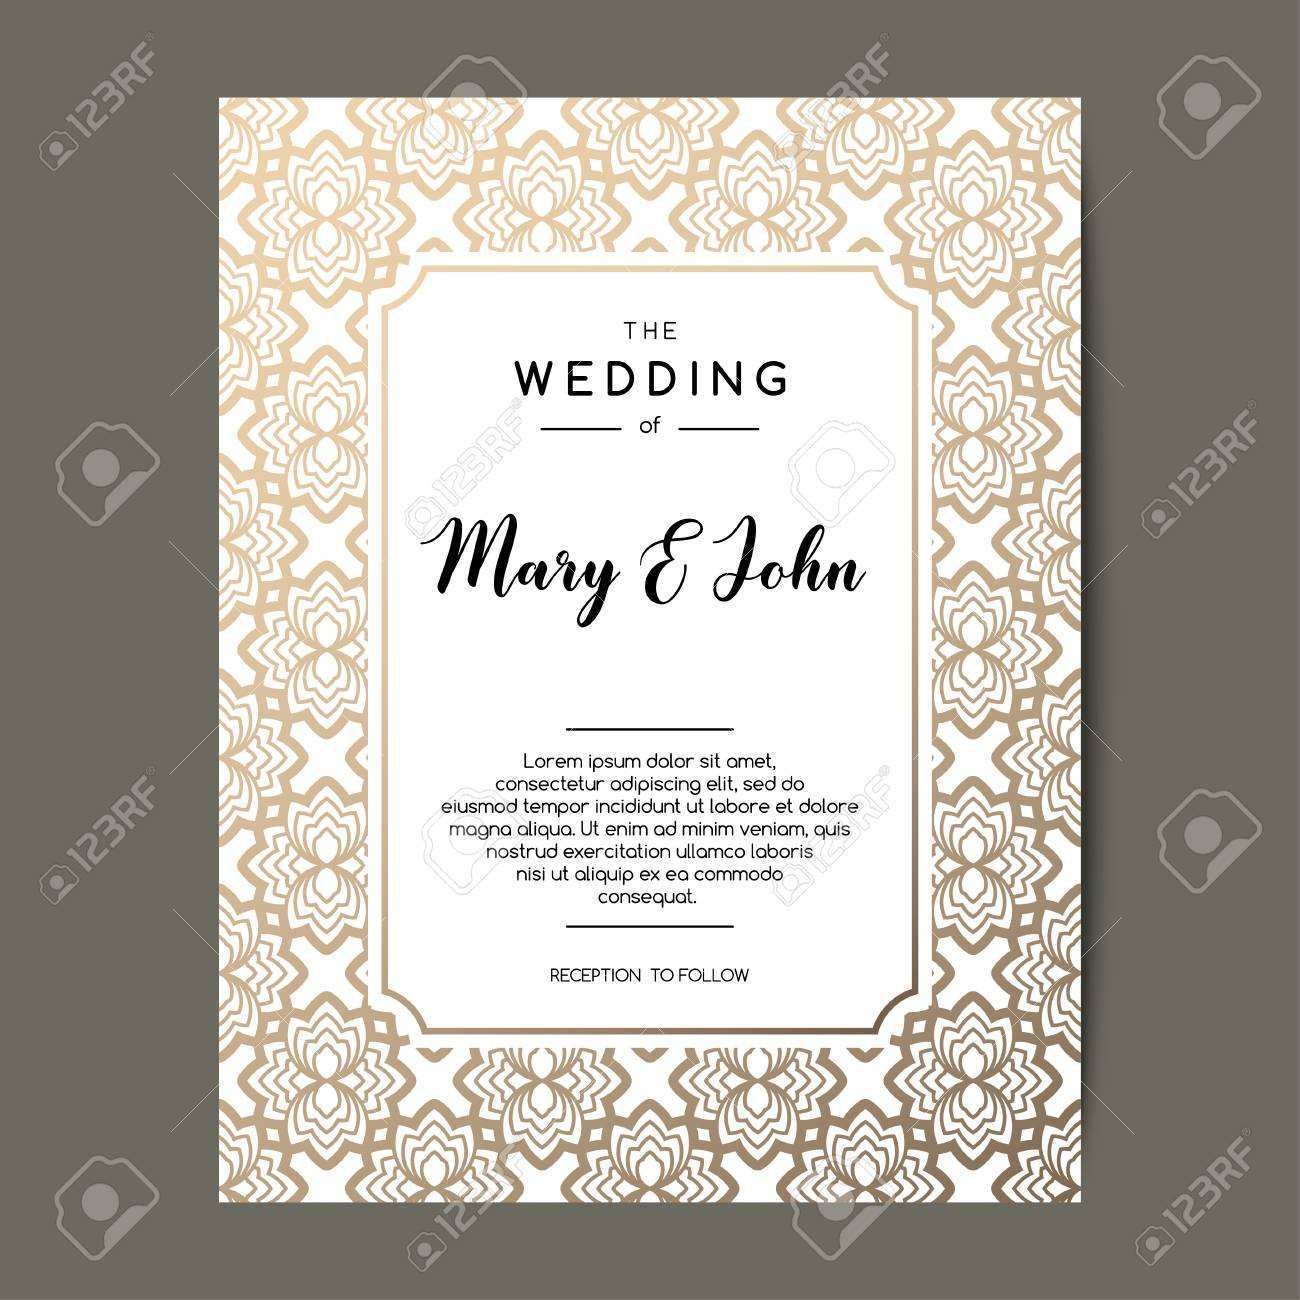 77 Create Elegant Wedding Invitation Designs Free in Word by Elegant Wedding Invitation Designs Free